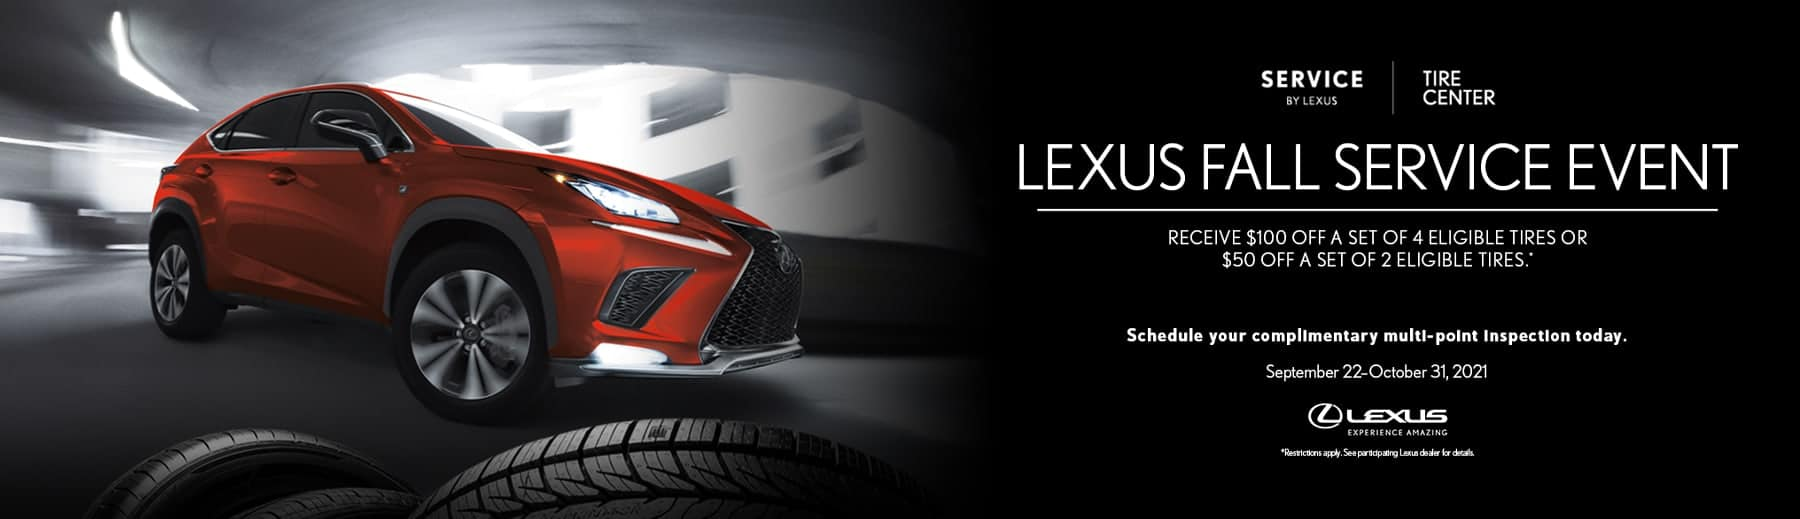 *Restrictions apply. See Participating Lexus Dealers for details.